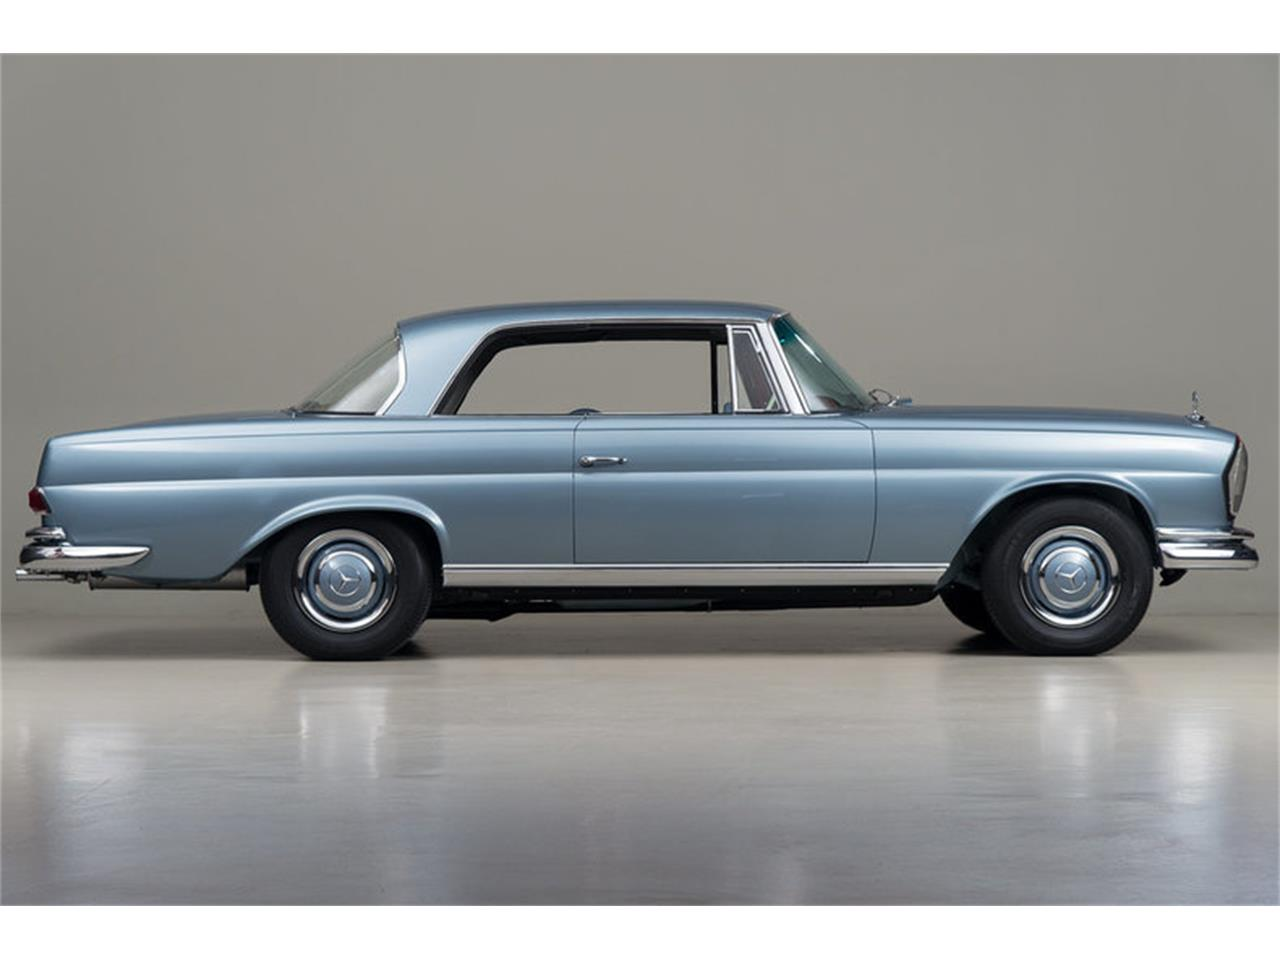 Large Picture of '66 Mercedes-Benz 250SE located in California Auction Vehicle Offered by Canepa - DSVZ